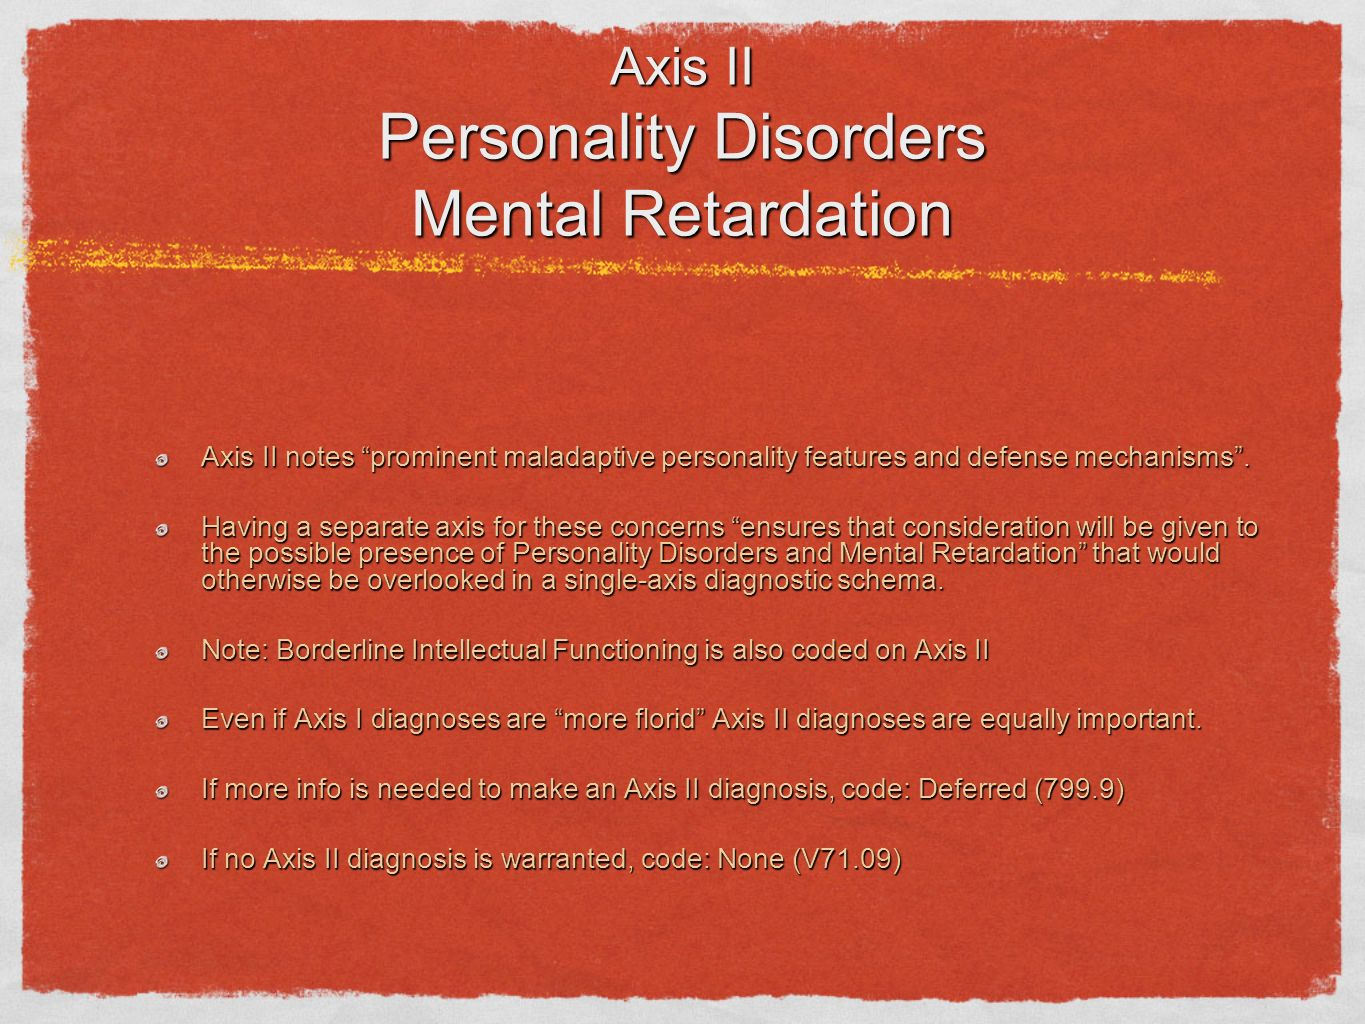 Axis II Personality Disorders Mental Retardation